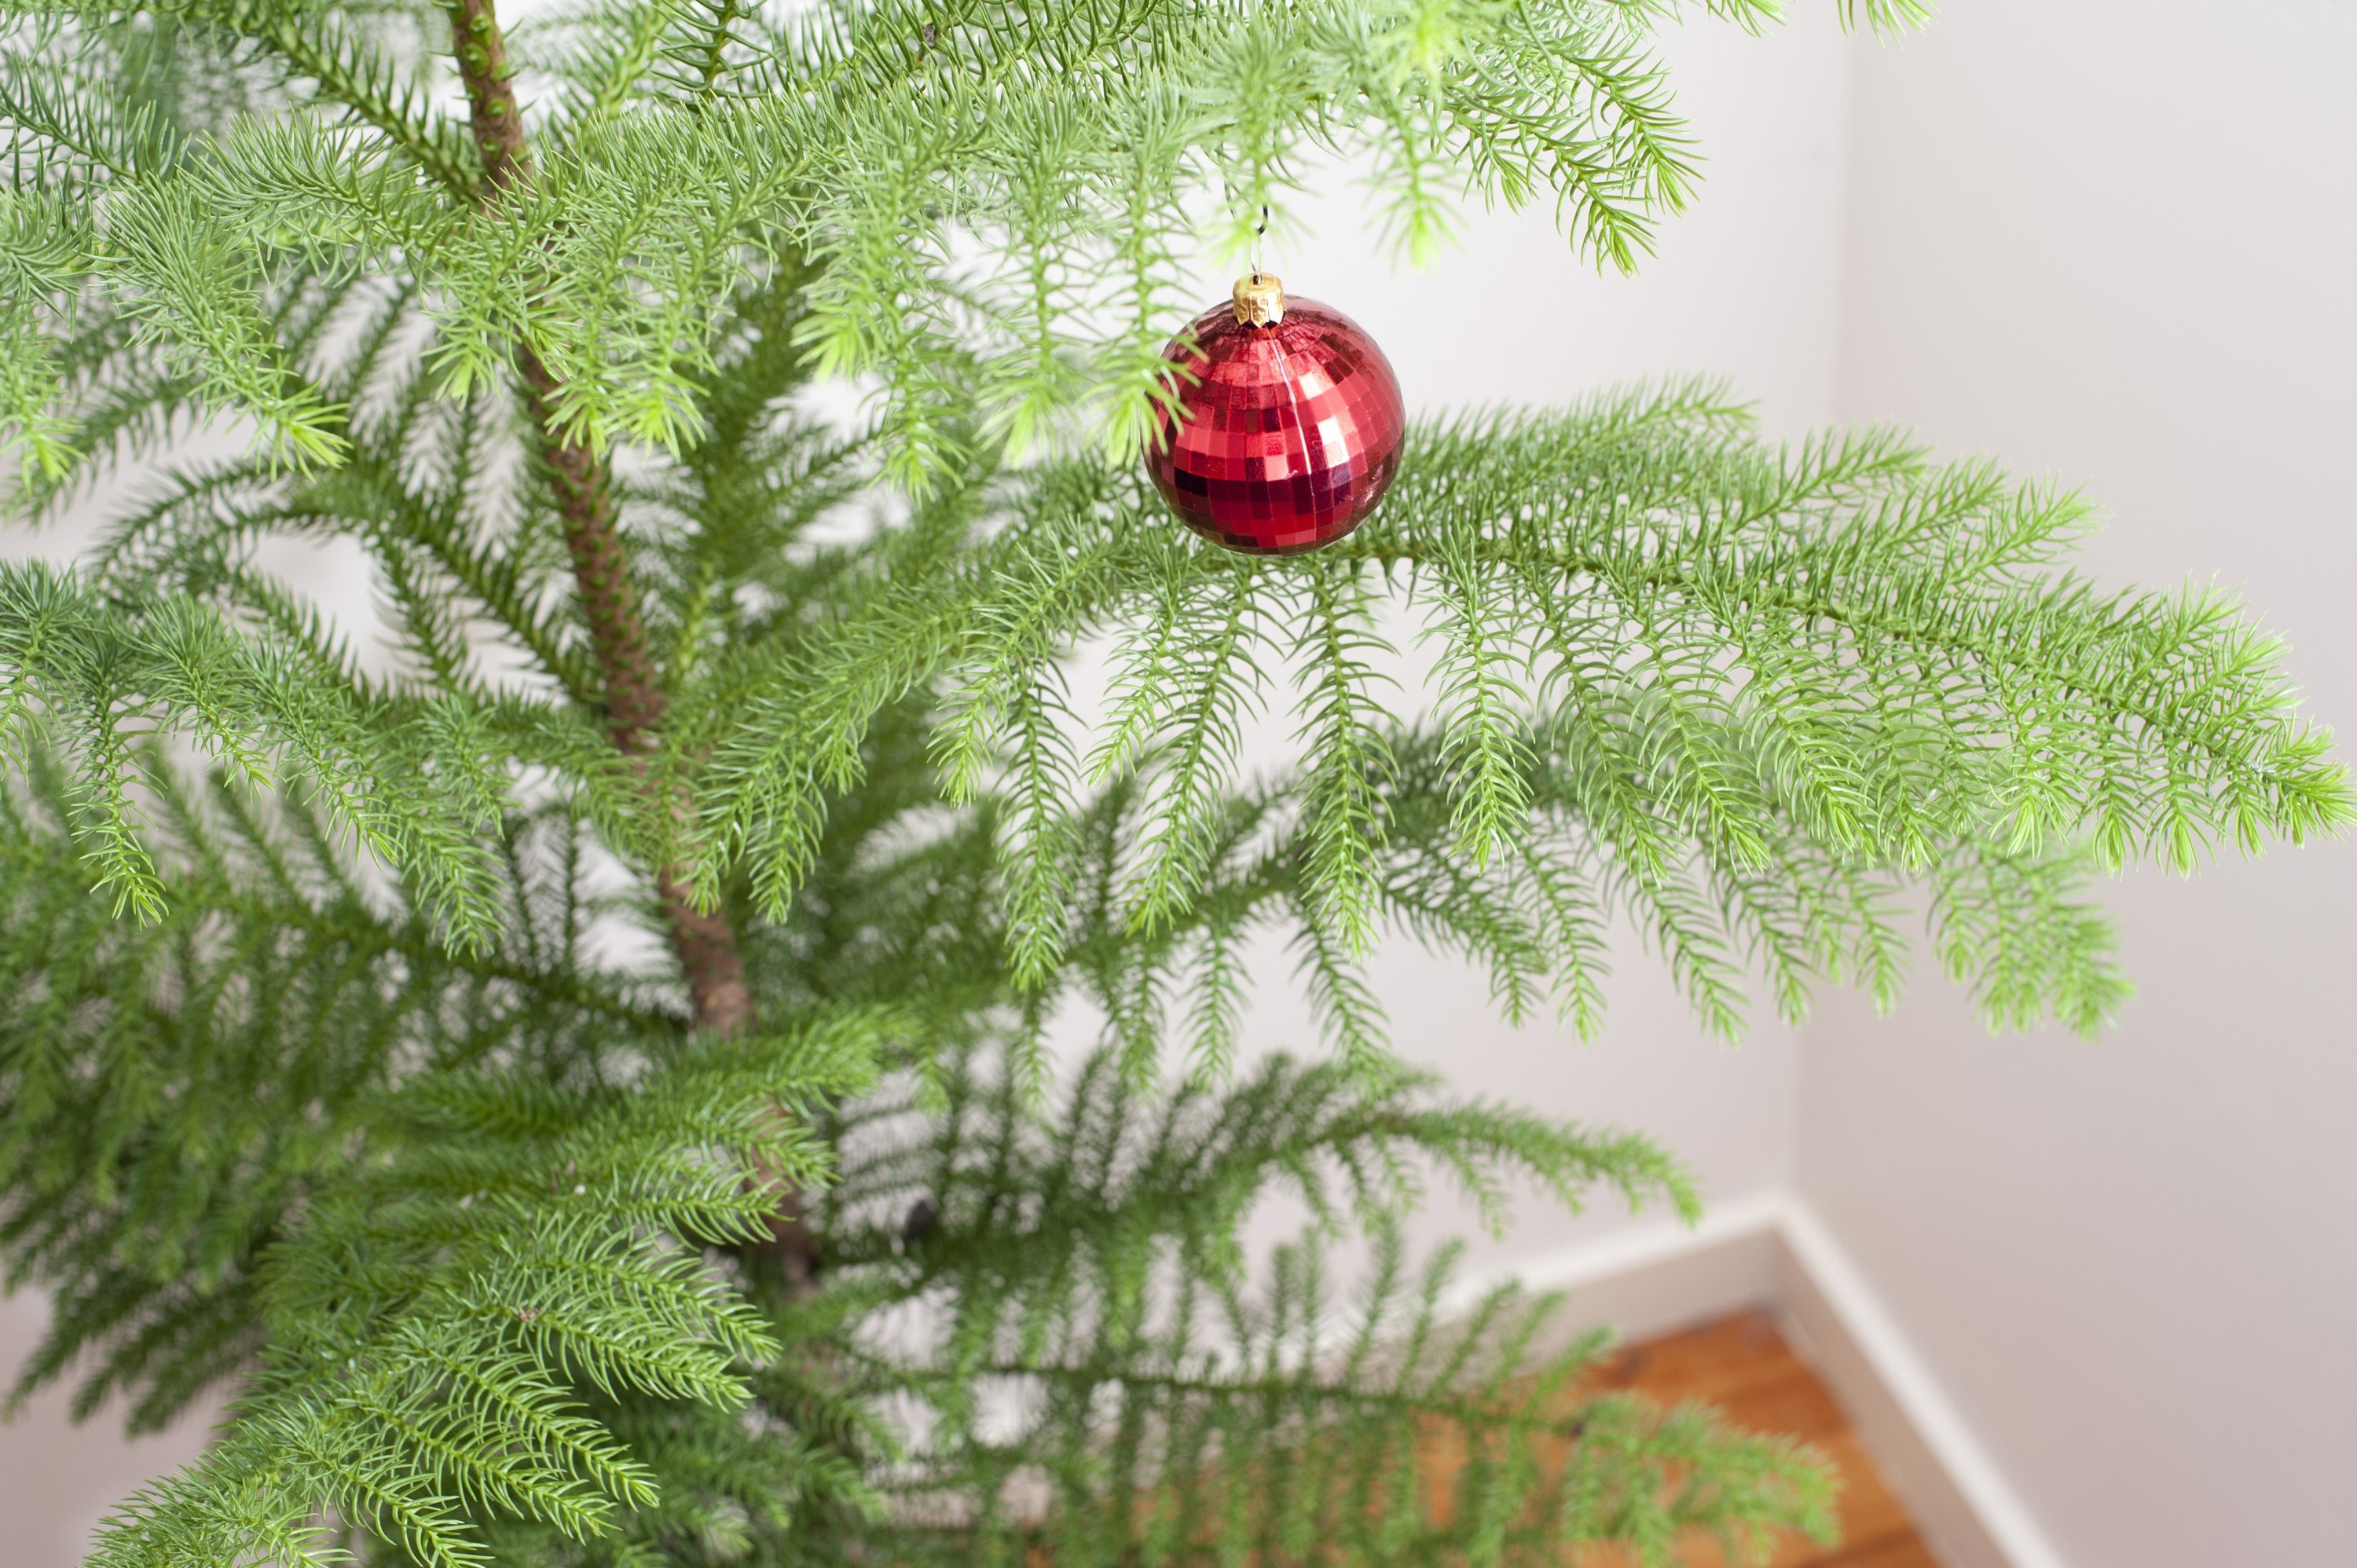 Photo Of Pine Christmas Tree With A Red Bauble